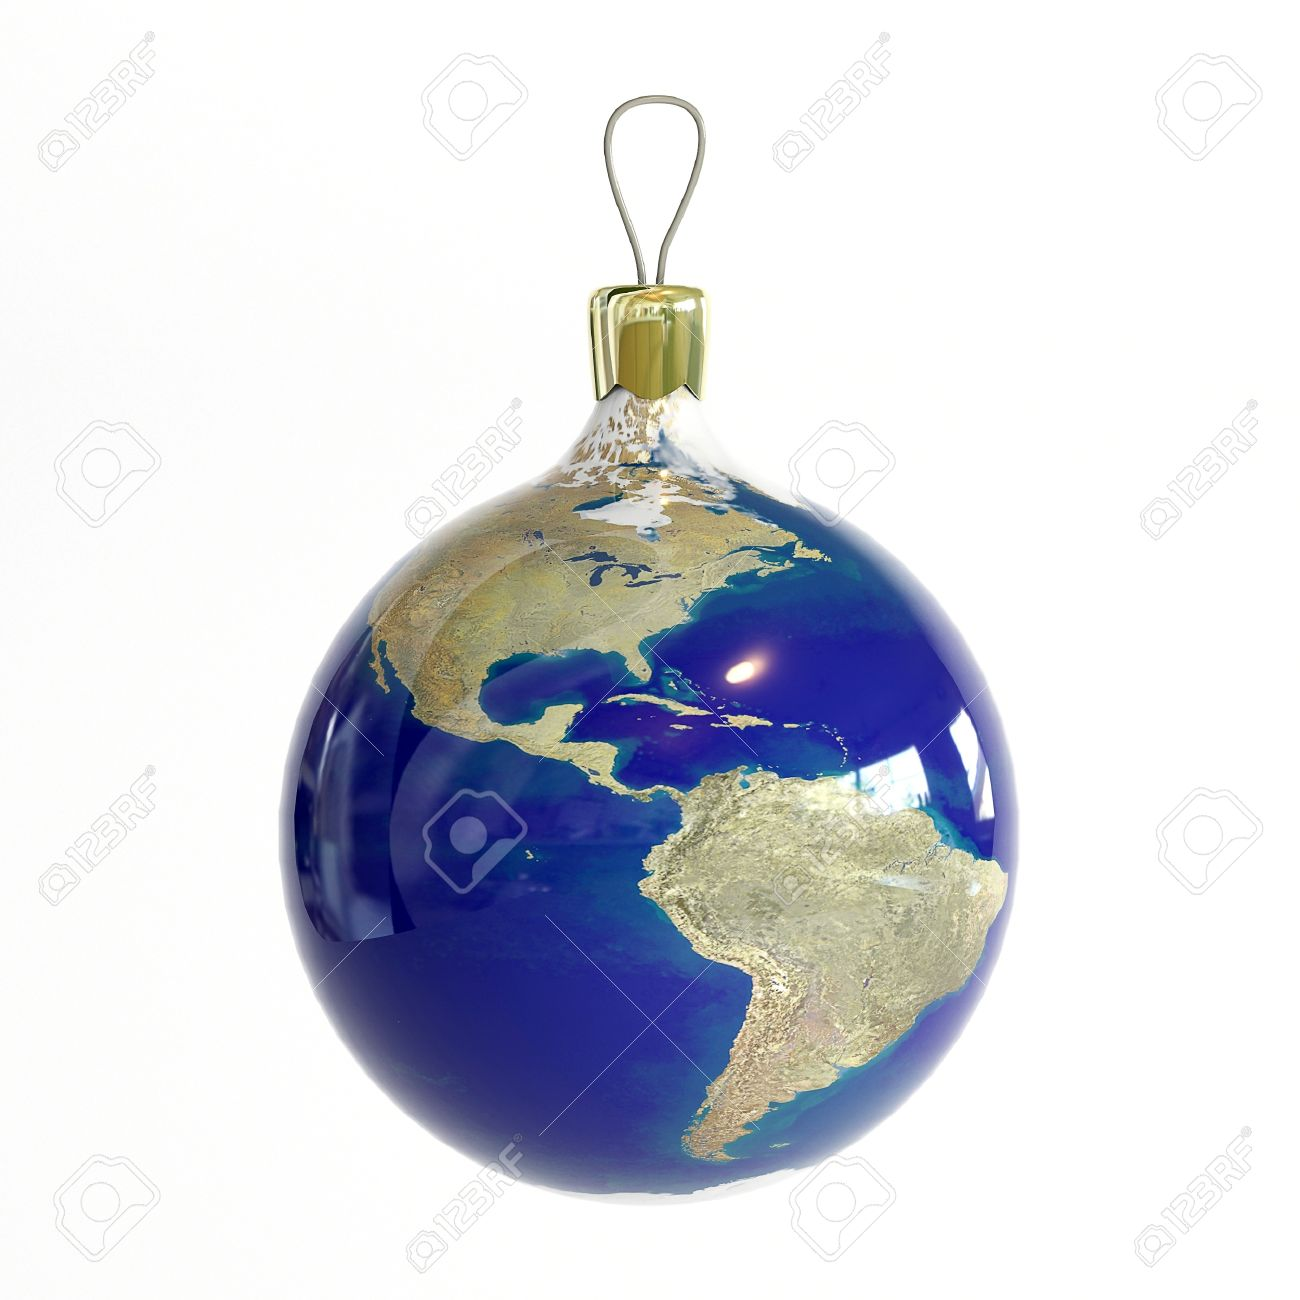 Christmas Ball With Map Of Planet Earth Stock Photo, Picture And ...